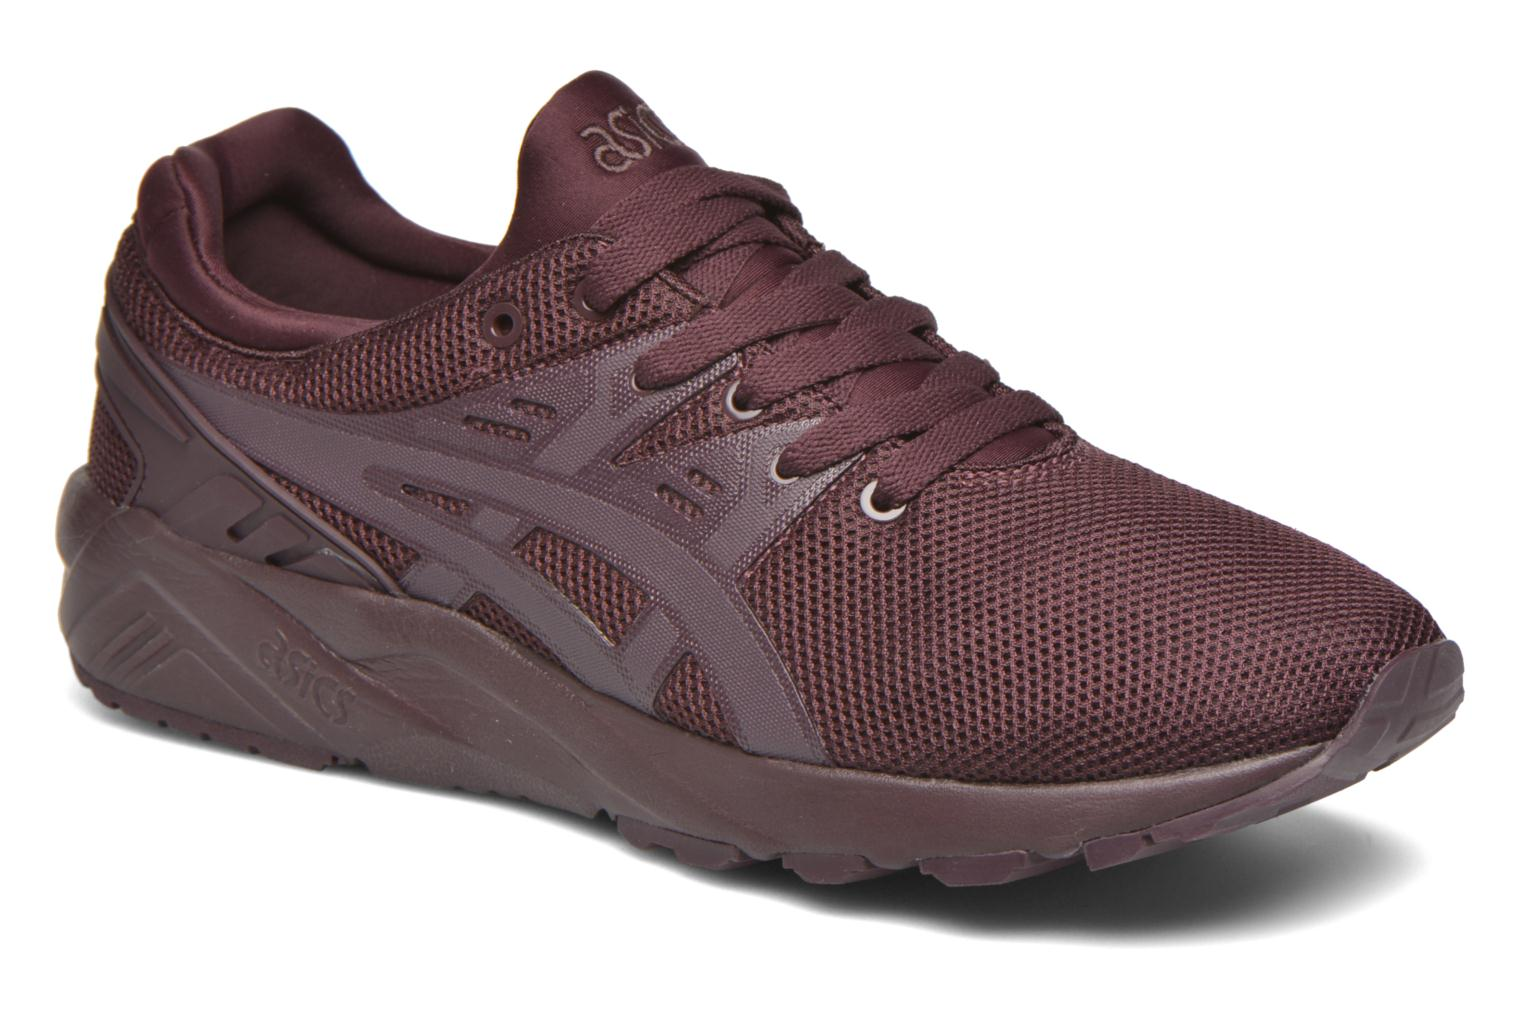 Baskets Asics Gel Kayano Trainer EVO Bordeaux 5iUOLFBY